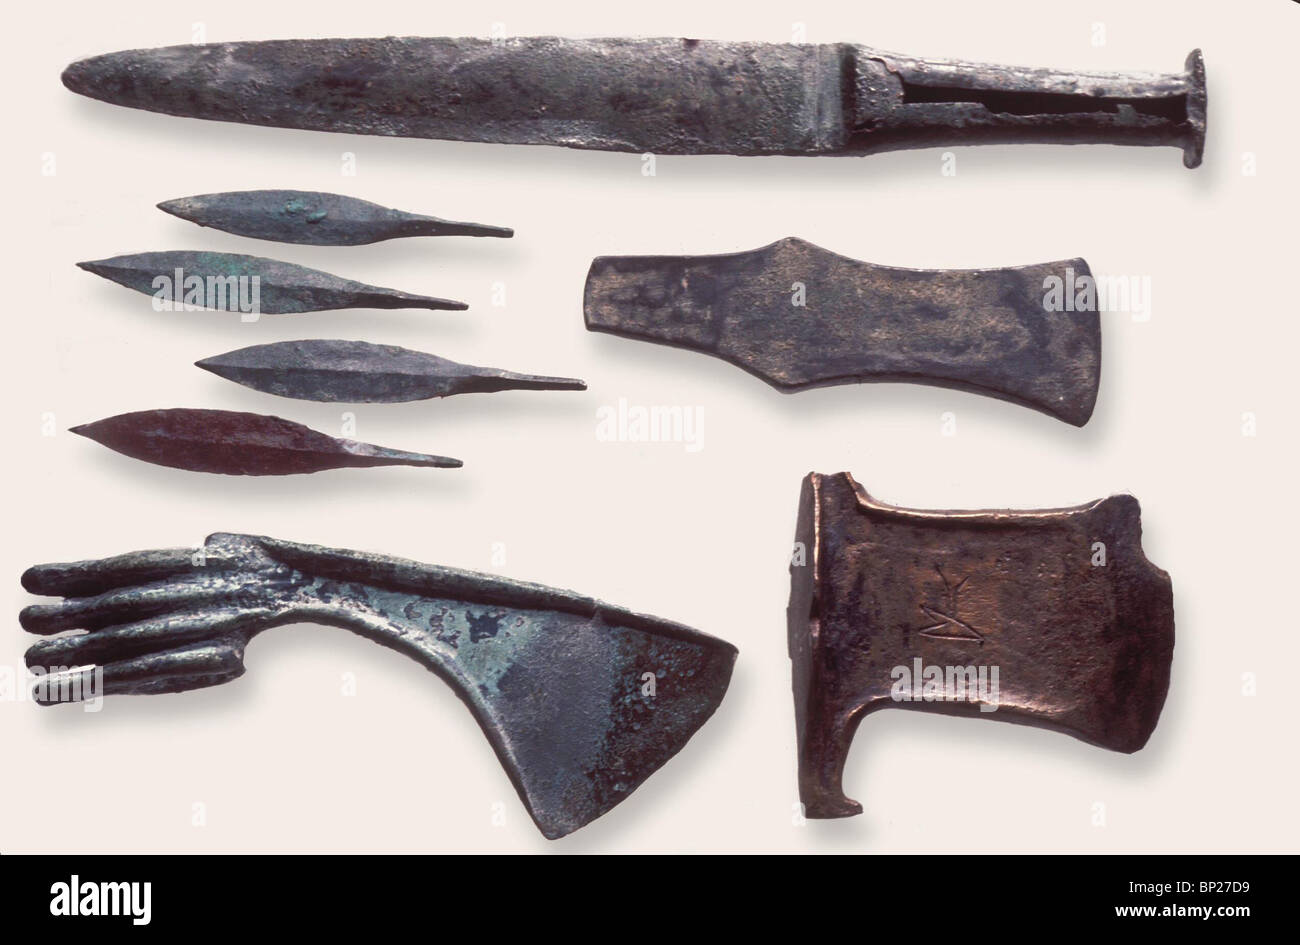 Hittites Weapons And Tools Hittites Iron Weapons ...